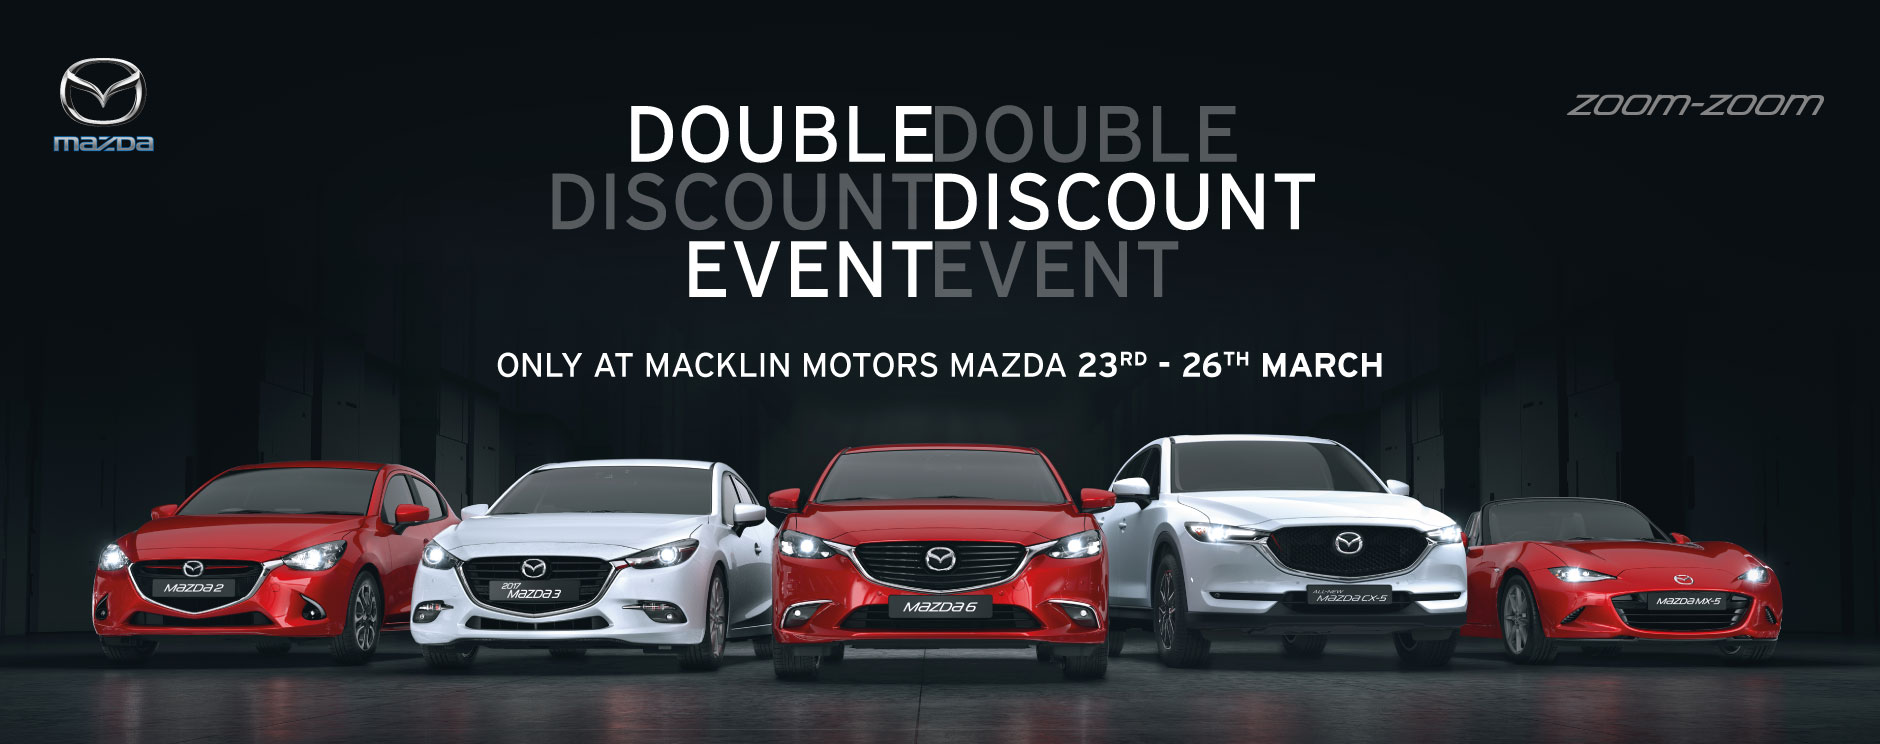 Mazda double discount event banner